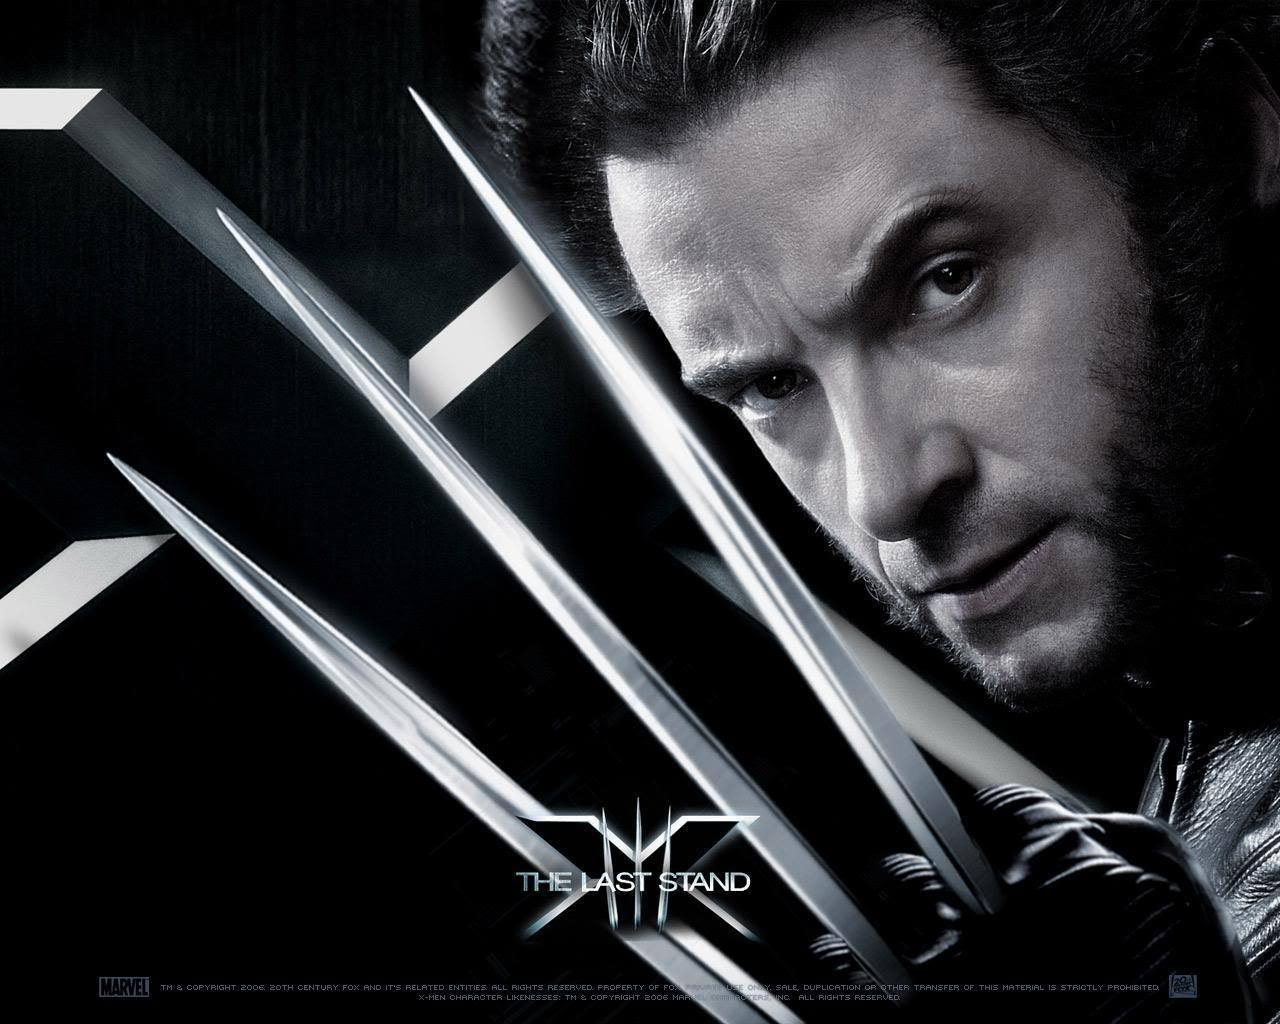 wolverine men Wolverine and the x-men was the fourth animated incarnation of the x-men, following the failed tv pilot, pryde of the x-men, the 90s x-men animated series, and x-men evolution.